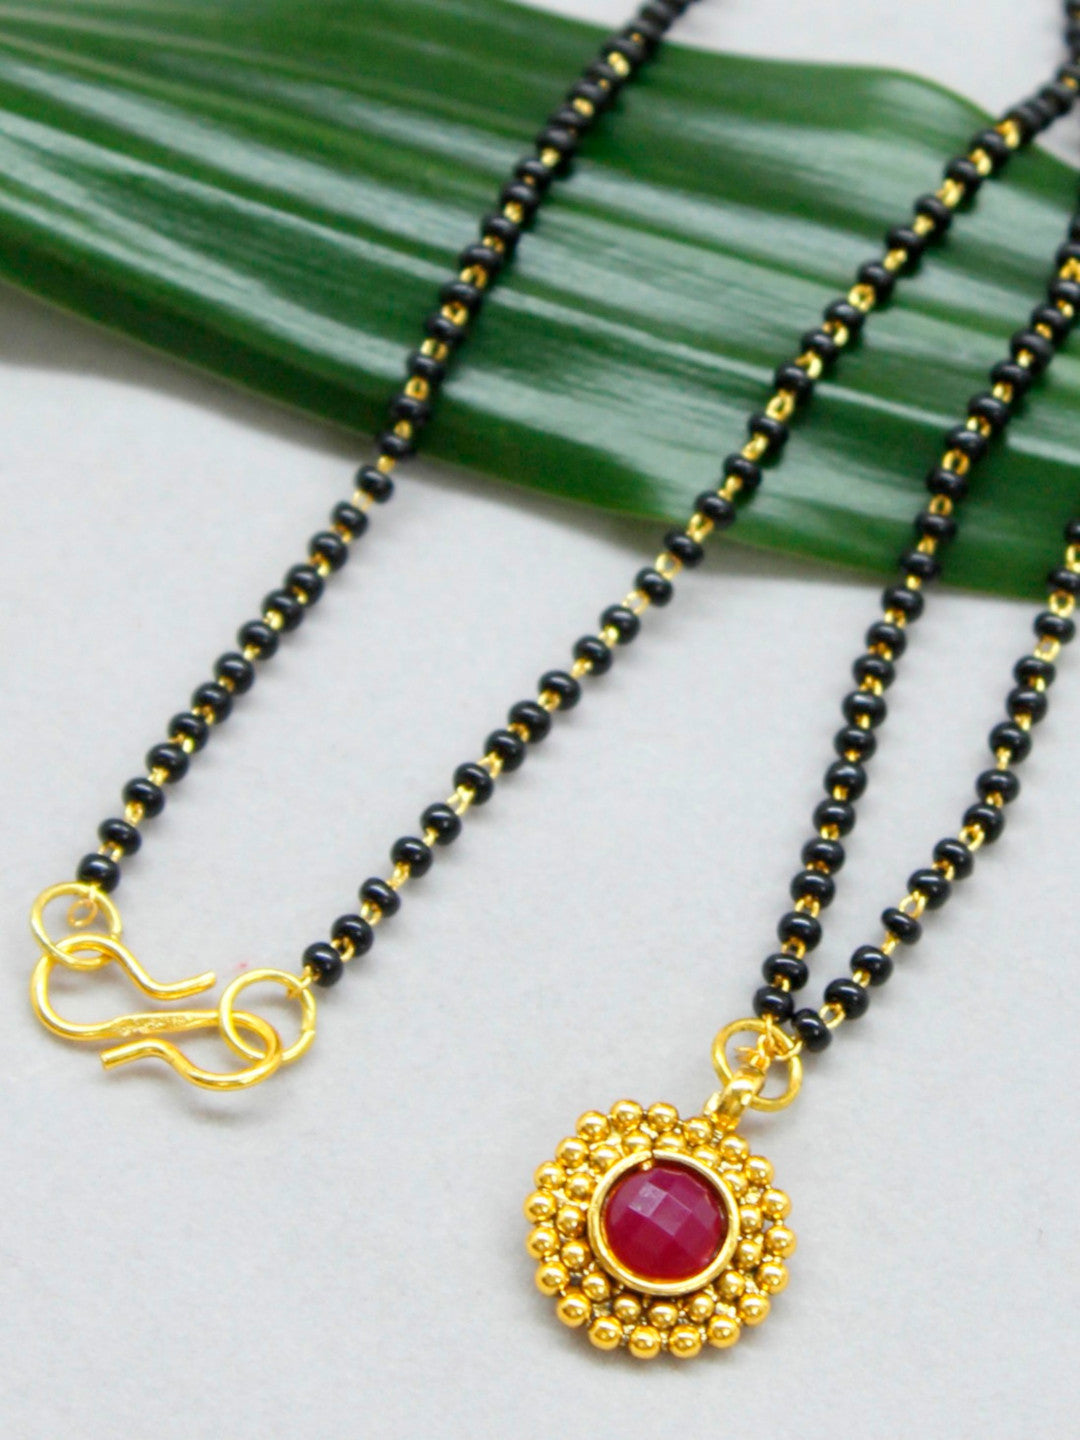 Traditional Jewelry Mangalsutra Beads Necklace With Red Stone Pendant-AVISMAYA1-Necklace Set